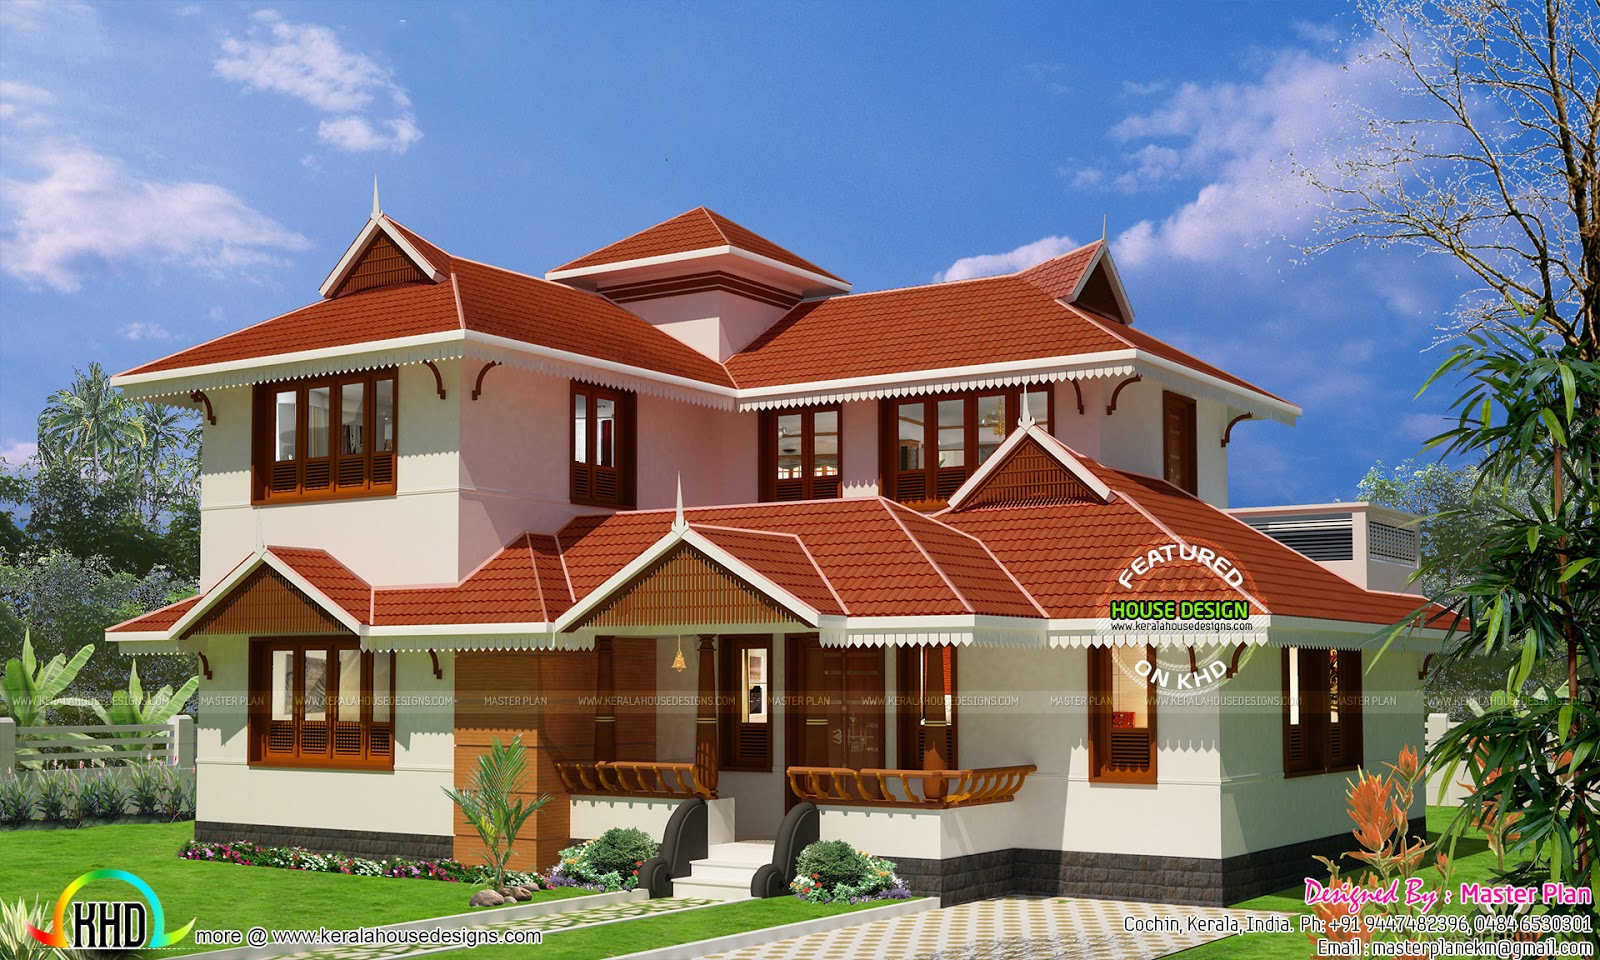 Kerala traditional home at bengaluru kerala home design for Kerala traditional home plans